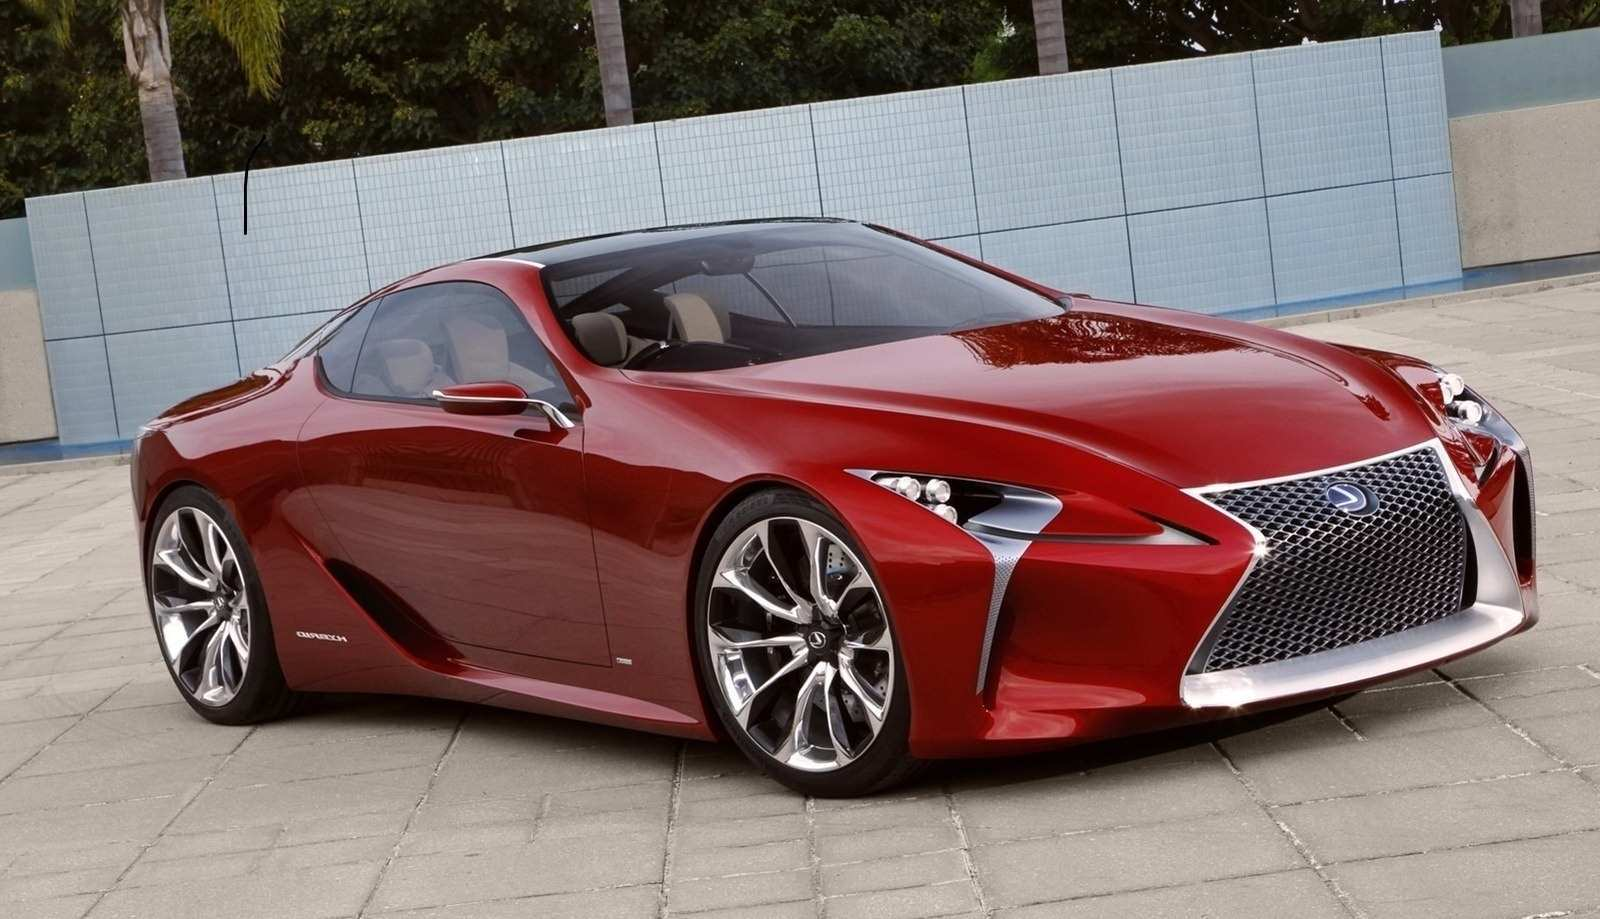 79 New 2019 Lexus Lf Lc Overview